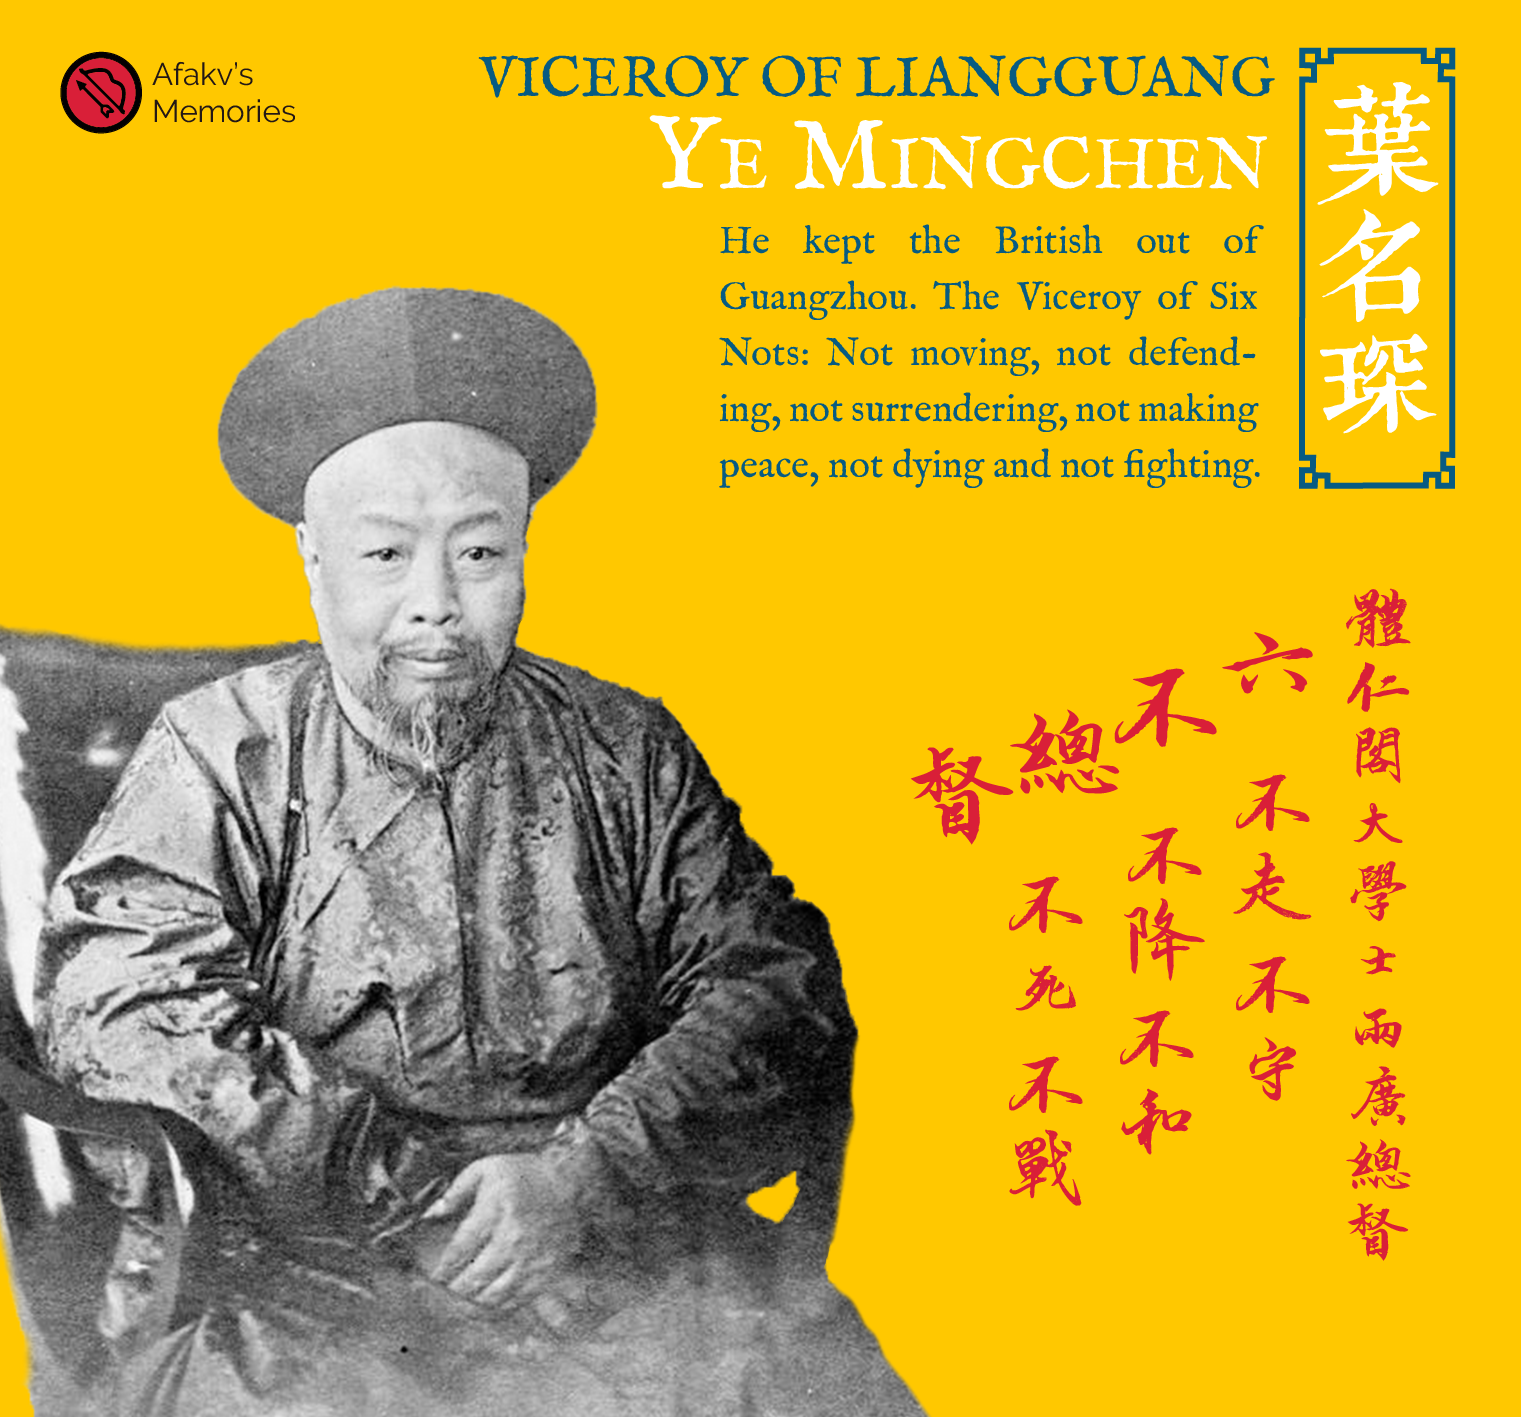 Afakv - Viceroy of Liangguang, Ye Mingchen, He kept the British out of Guangzhou. The Viceroy of Six Nots: Not moving, not defending, not surrendering, not making peace, not dying and not fighting. 葉名琛. 體仁閣大學士兩廣總督. 六不總督. 不戰、不和、不守、不死、不降、不走.